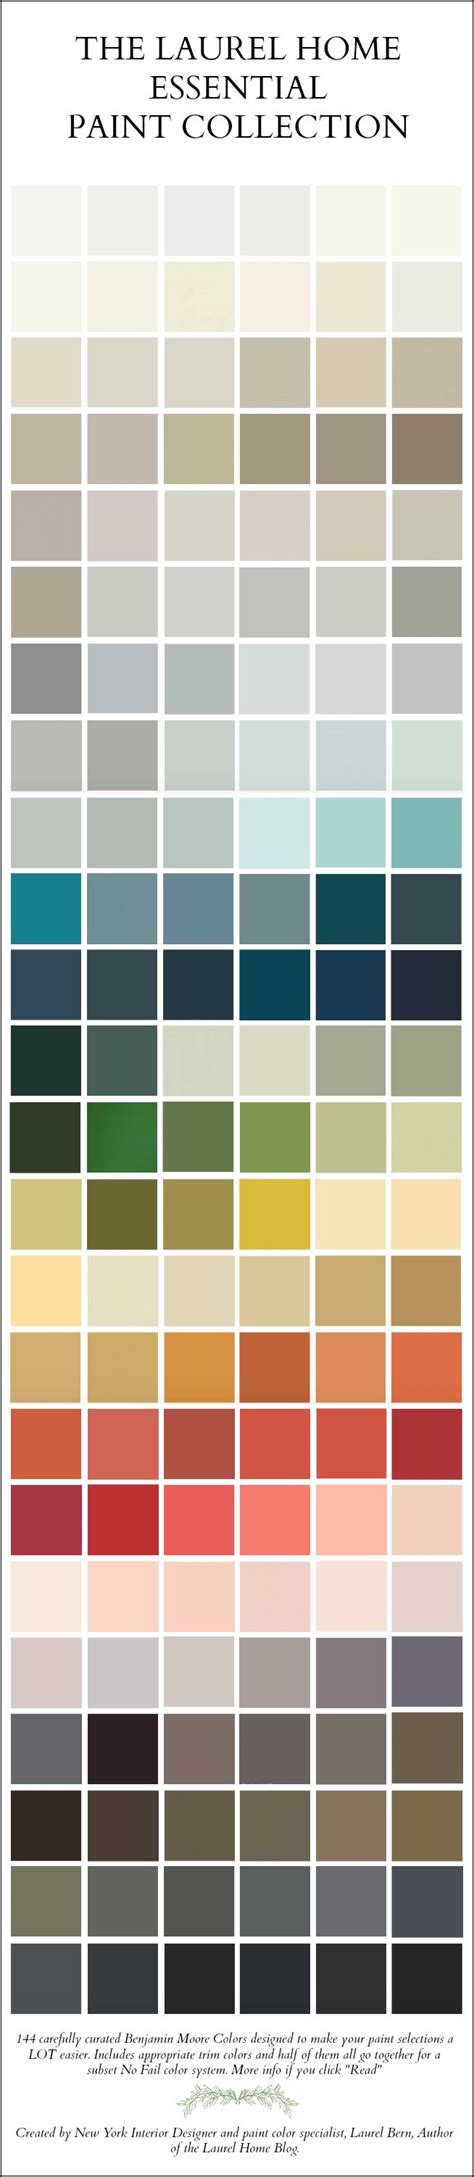 what paint colors mean 196 best images about for the home on pinterest house of